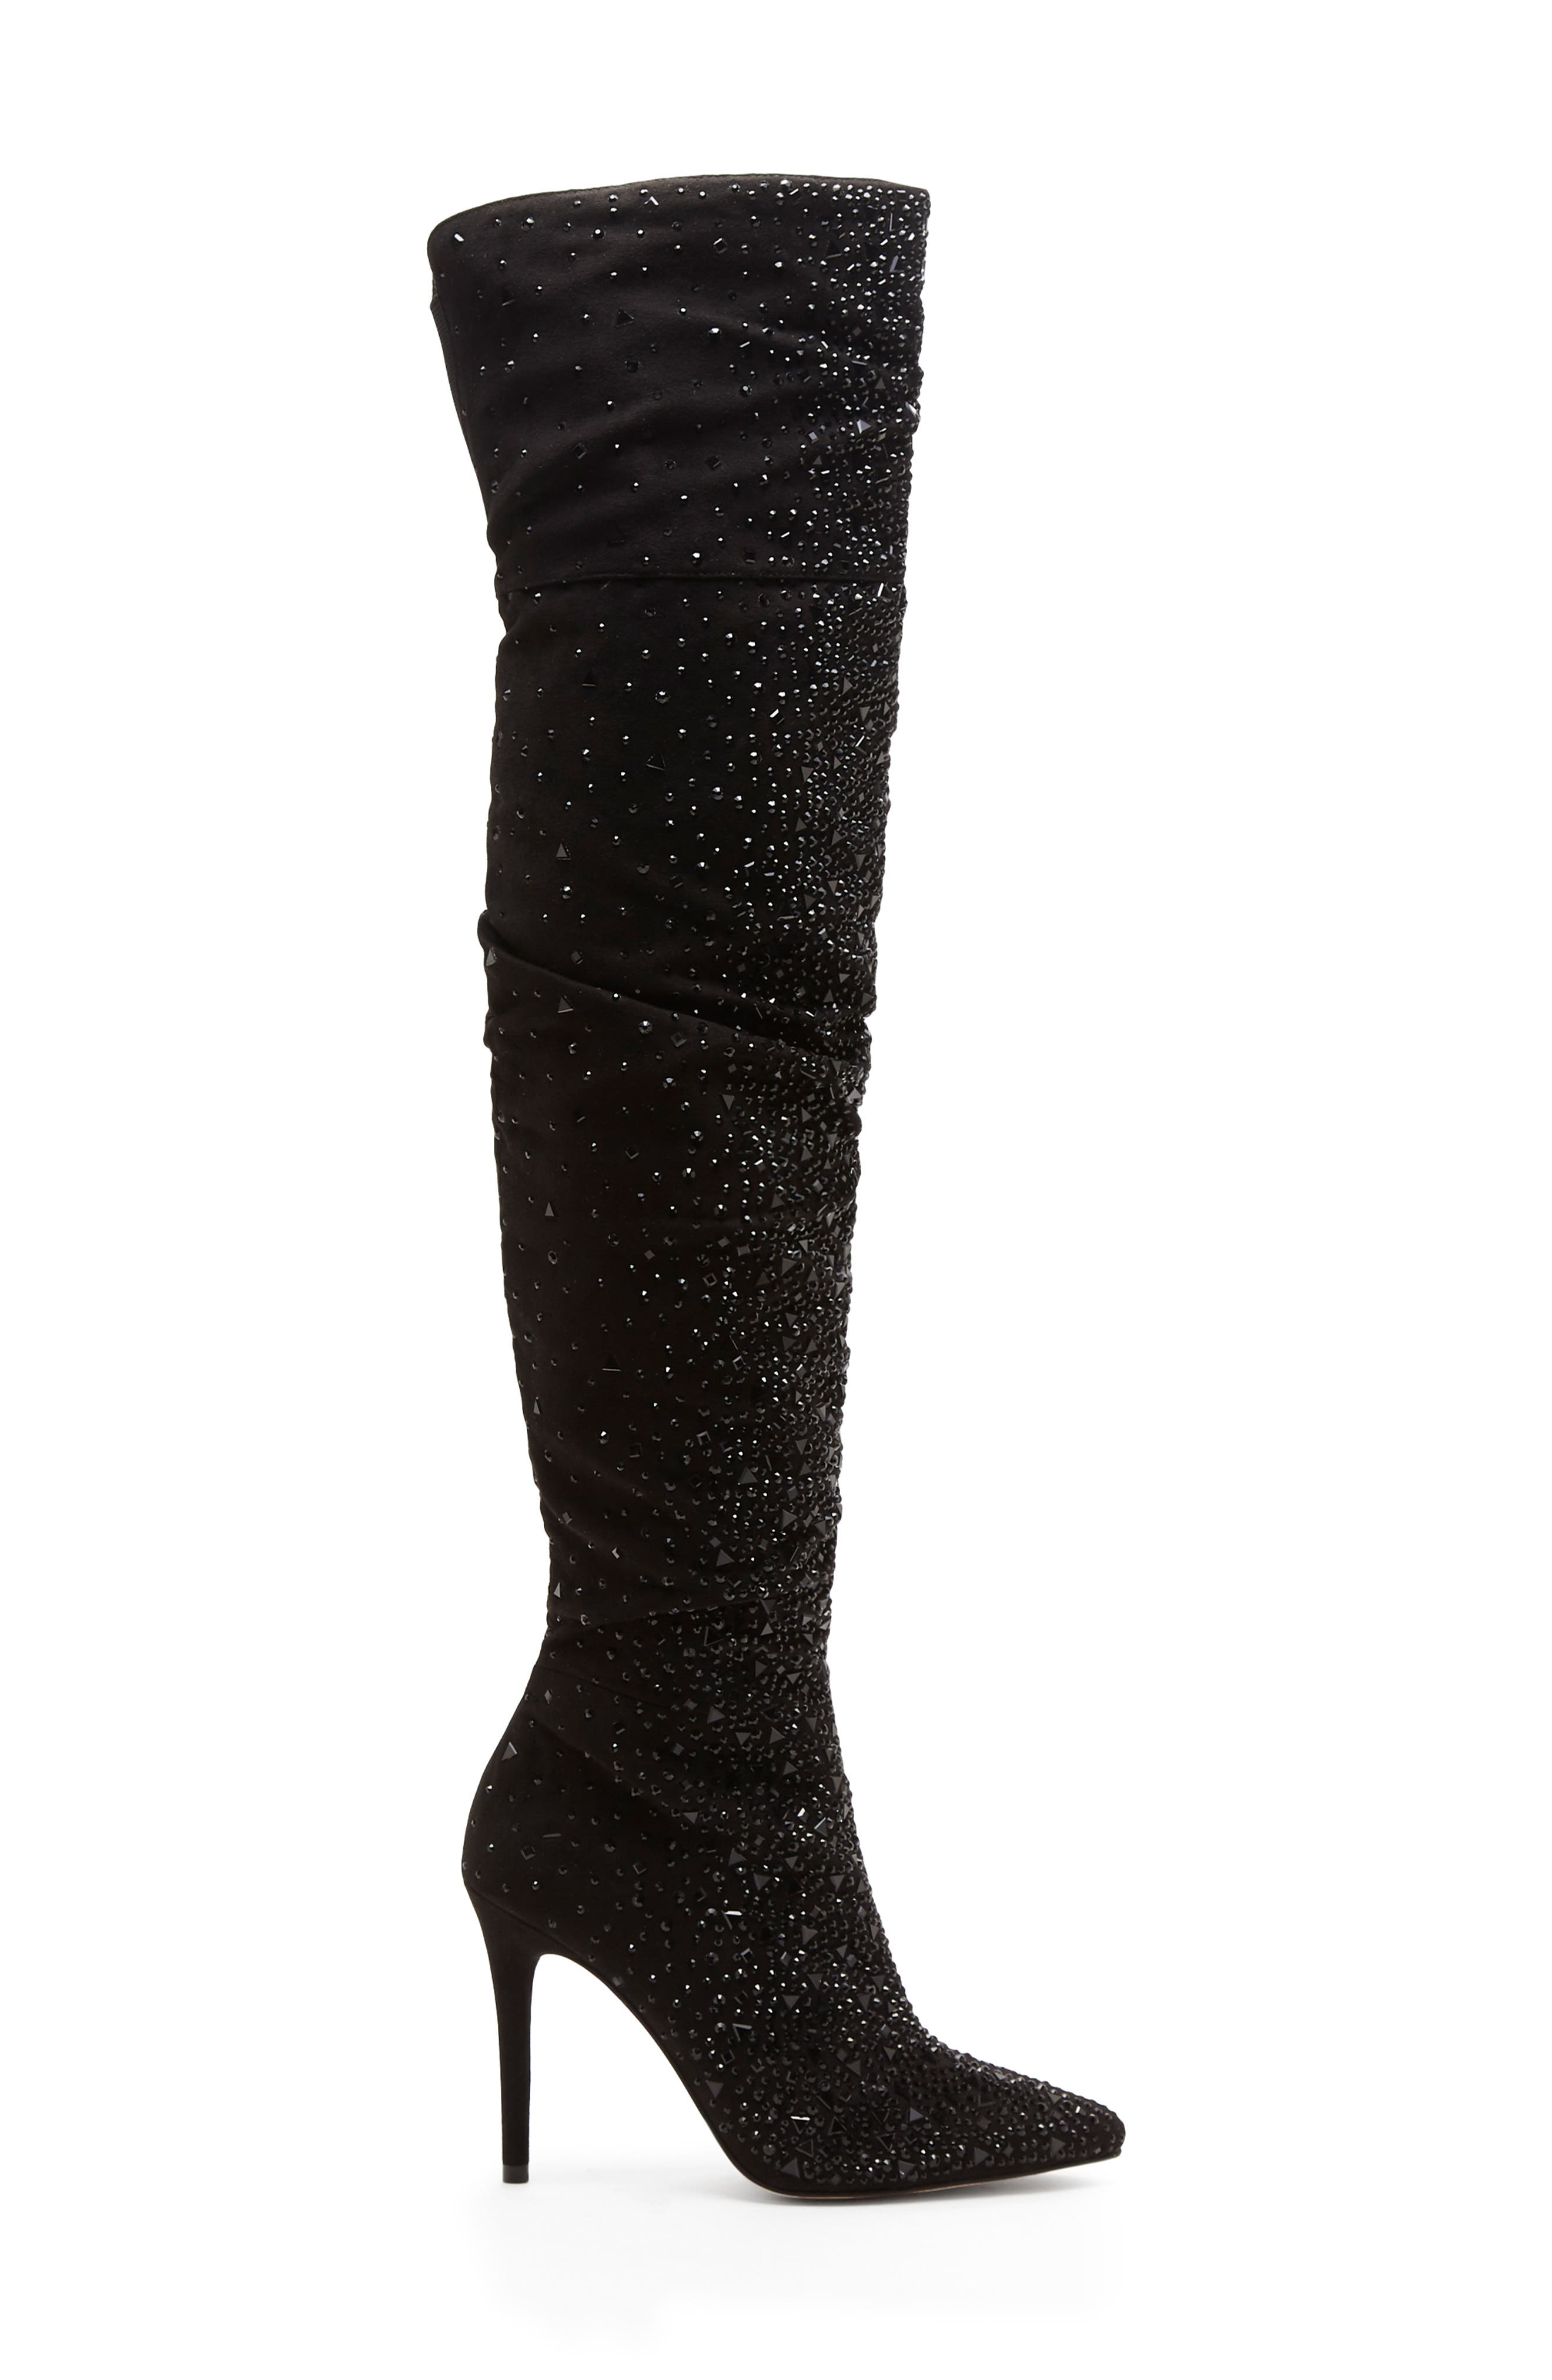 Luxella Over the Knee Boot,                             Alternate thumbnail 3, color,                             BLACK SPARKLES